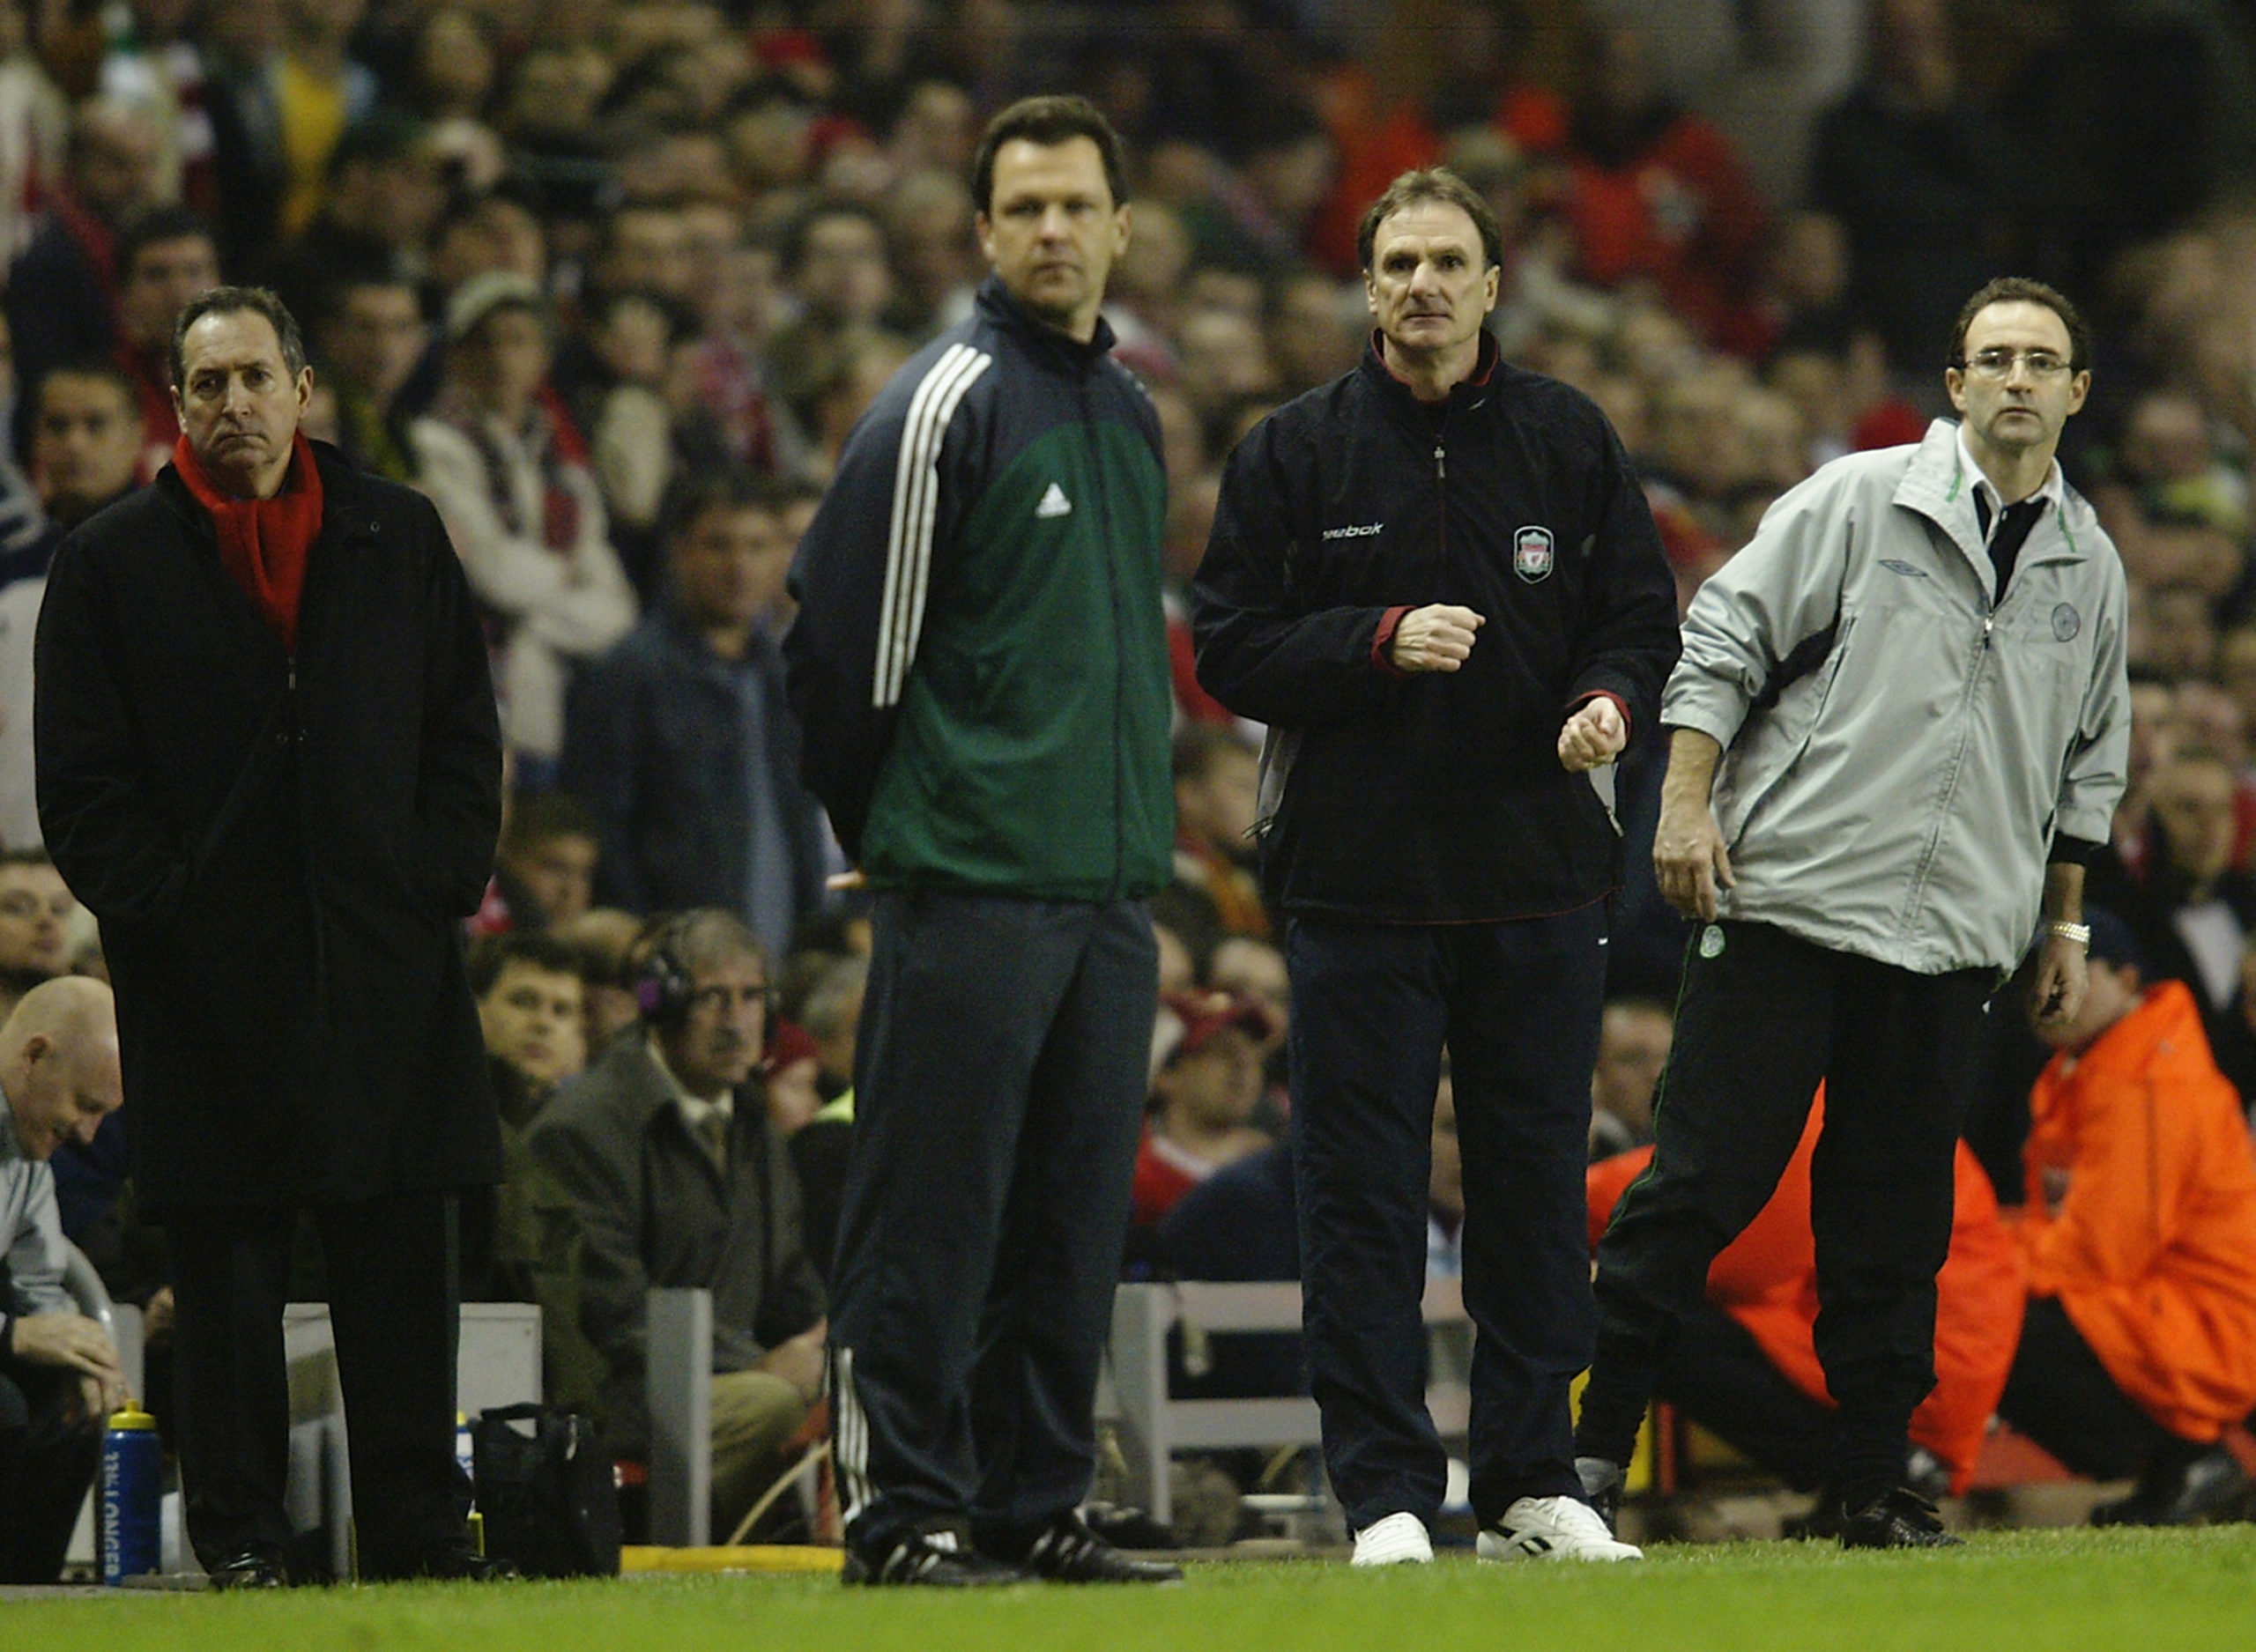 Martin O'Neill watches Celtic at Anfield in 2003